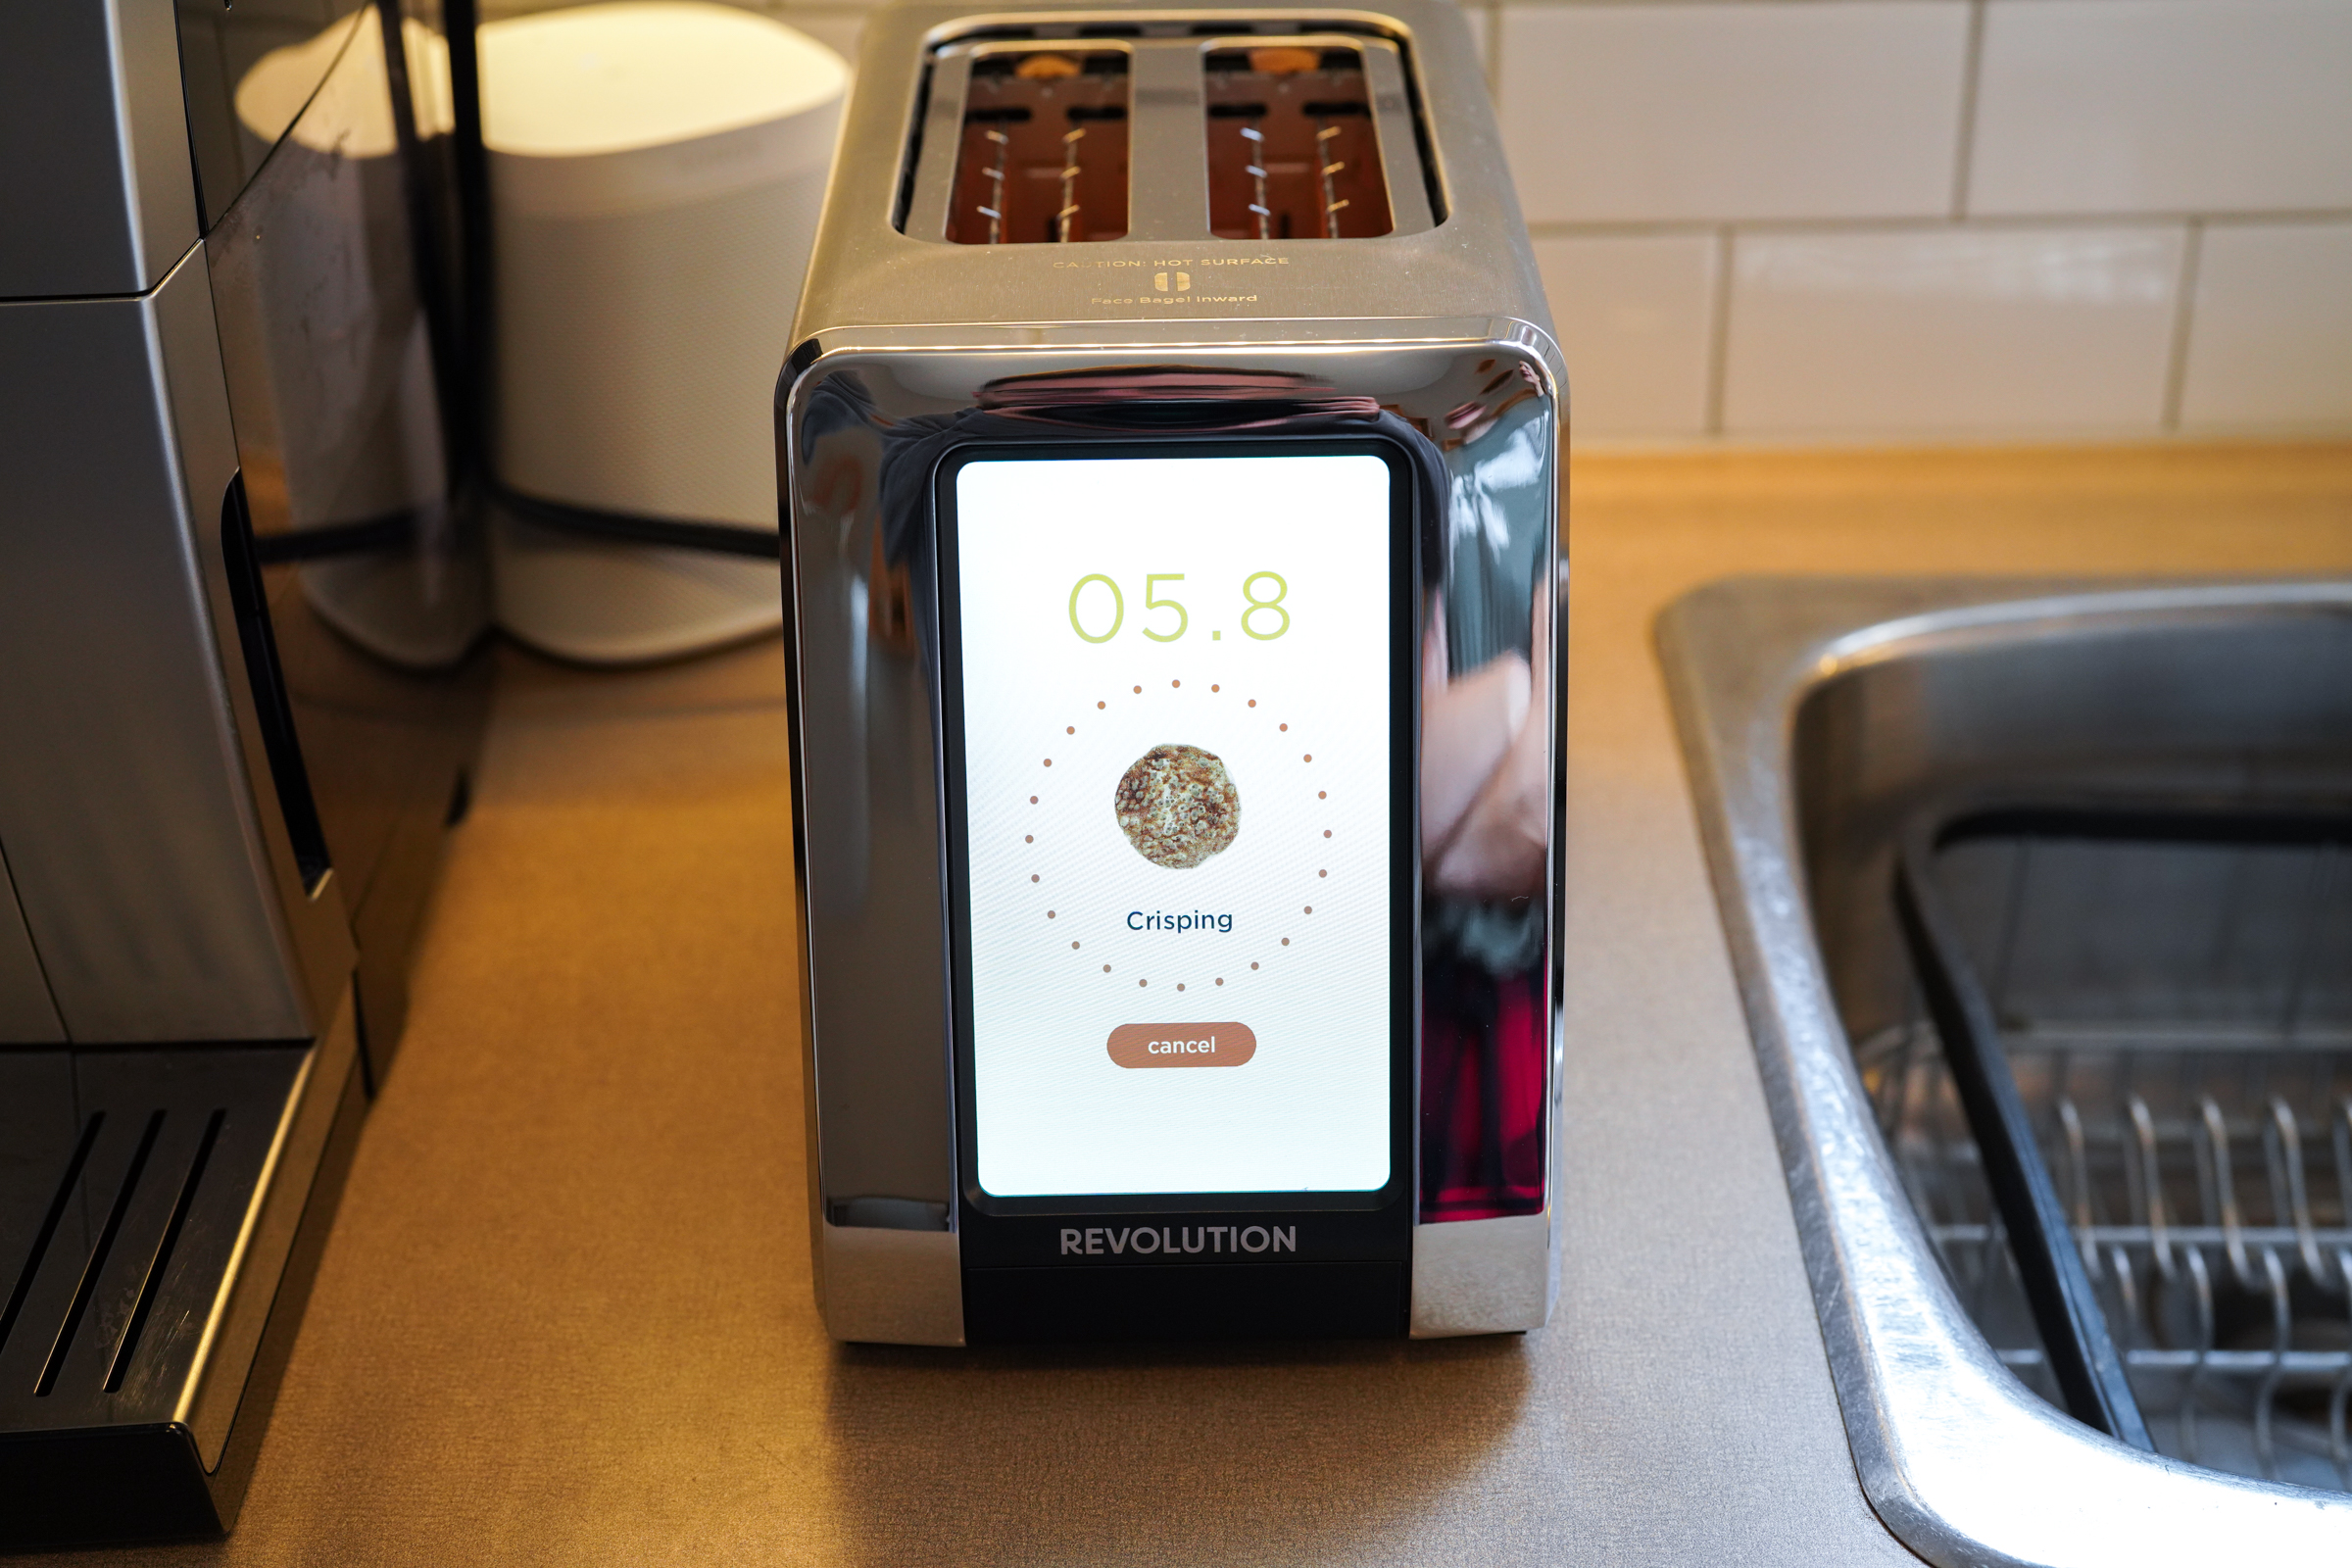 Revolution Cooking's R180 Smart Toaster delivers smarter, faster toasting – for a price 2